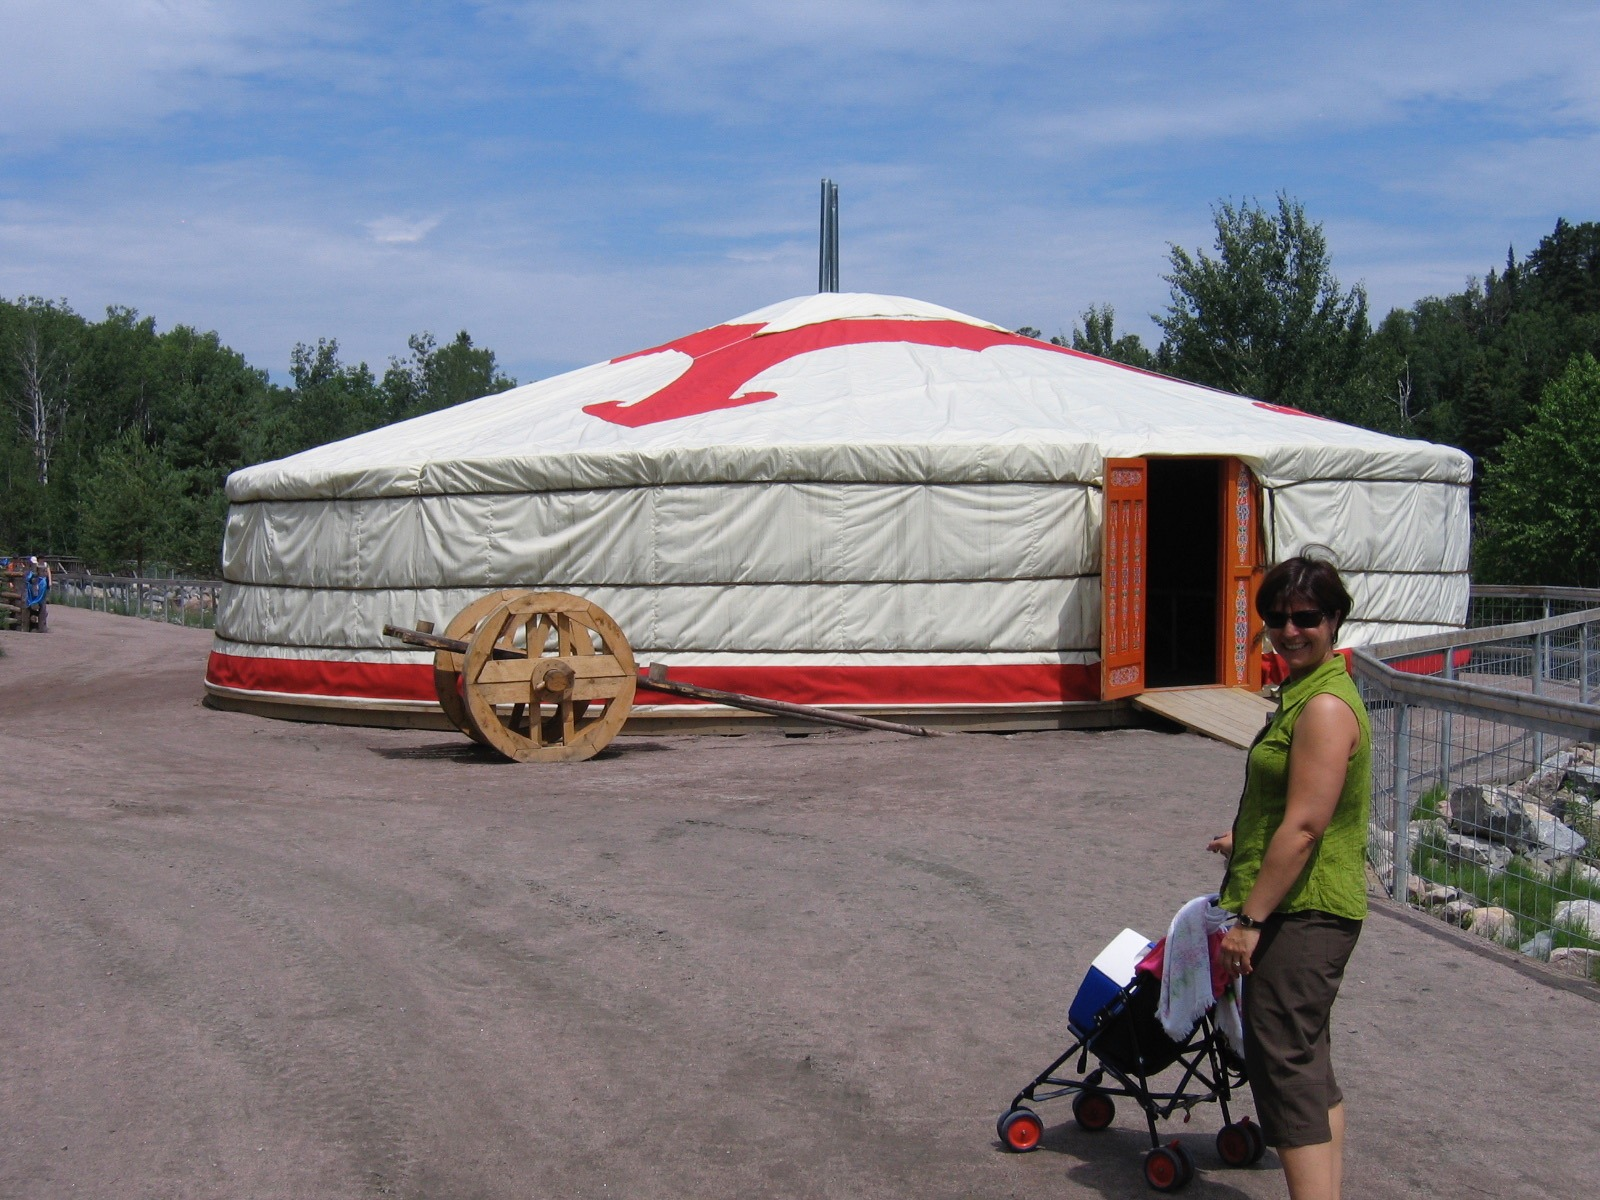 Yurt at a festival